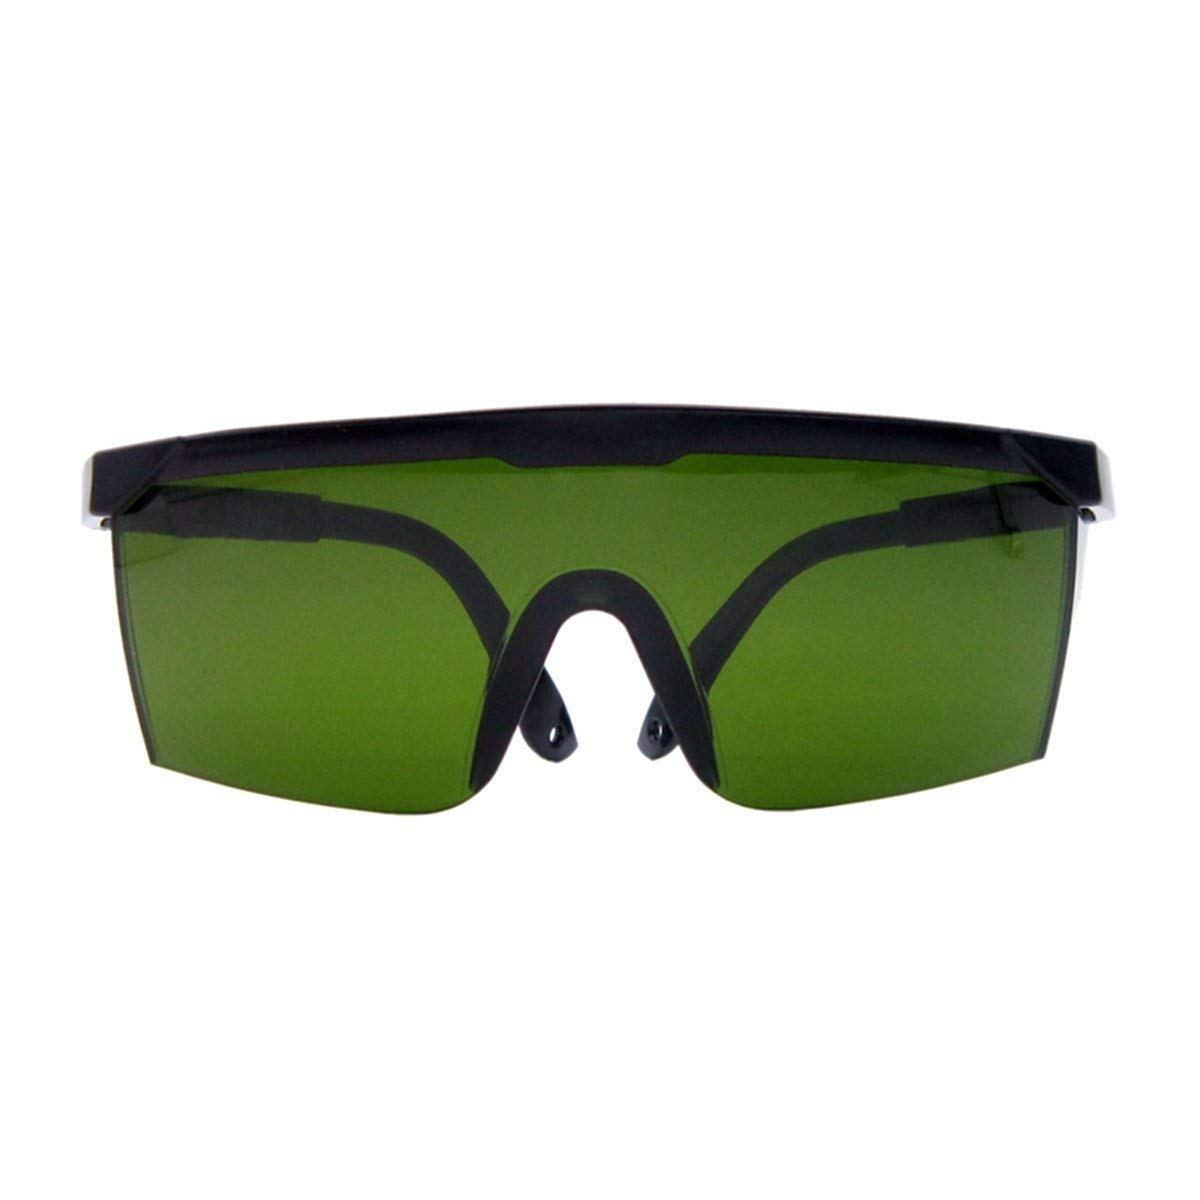 1064nm IPL 200-450nm & 800-2000nm Laser Protection Goggles Safety Glasses